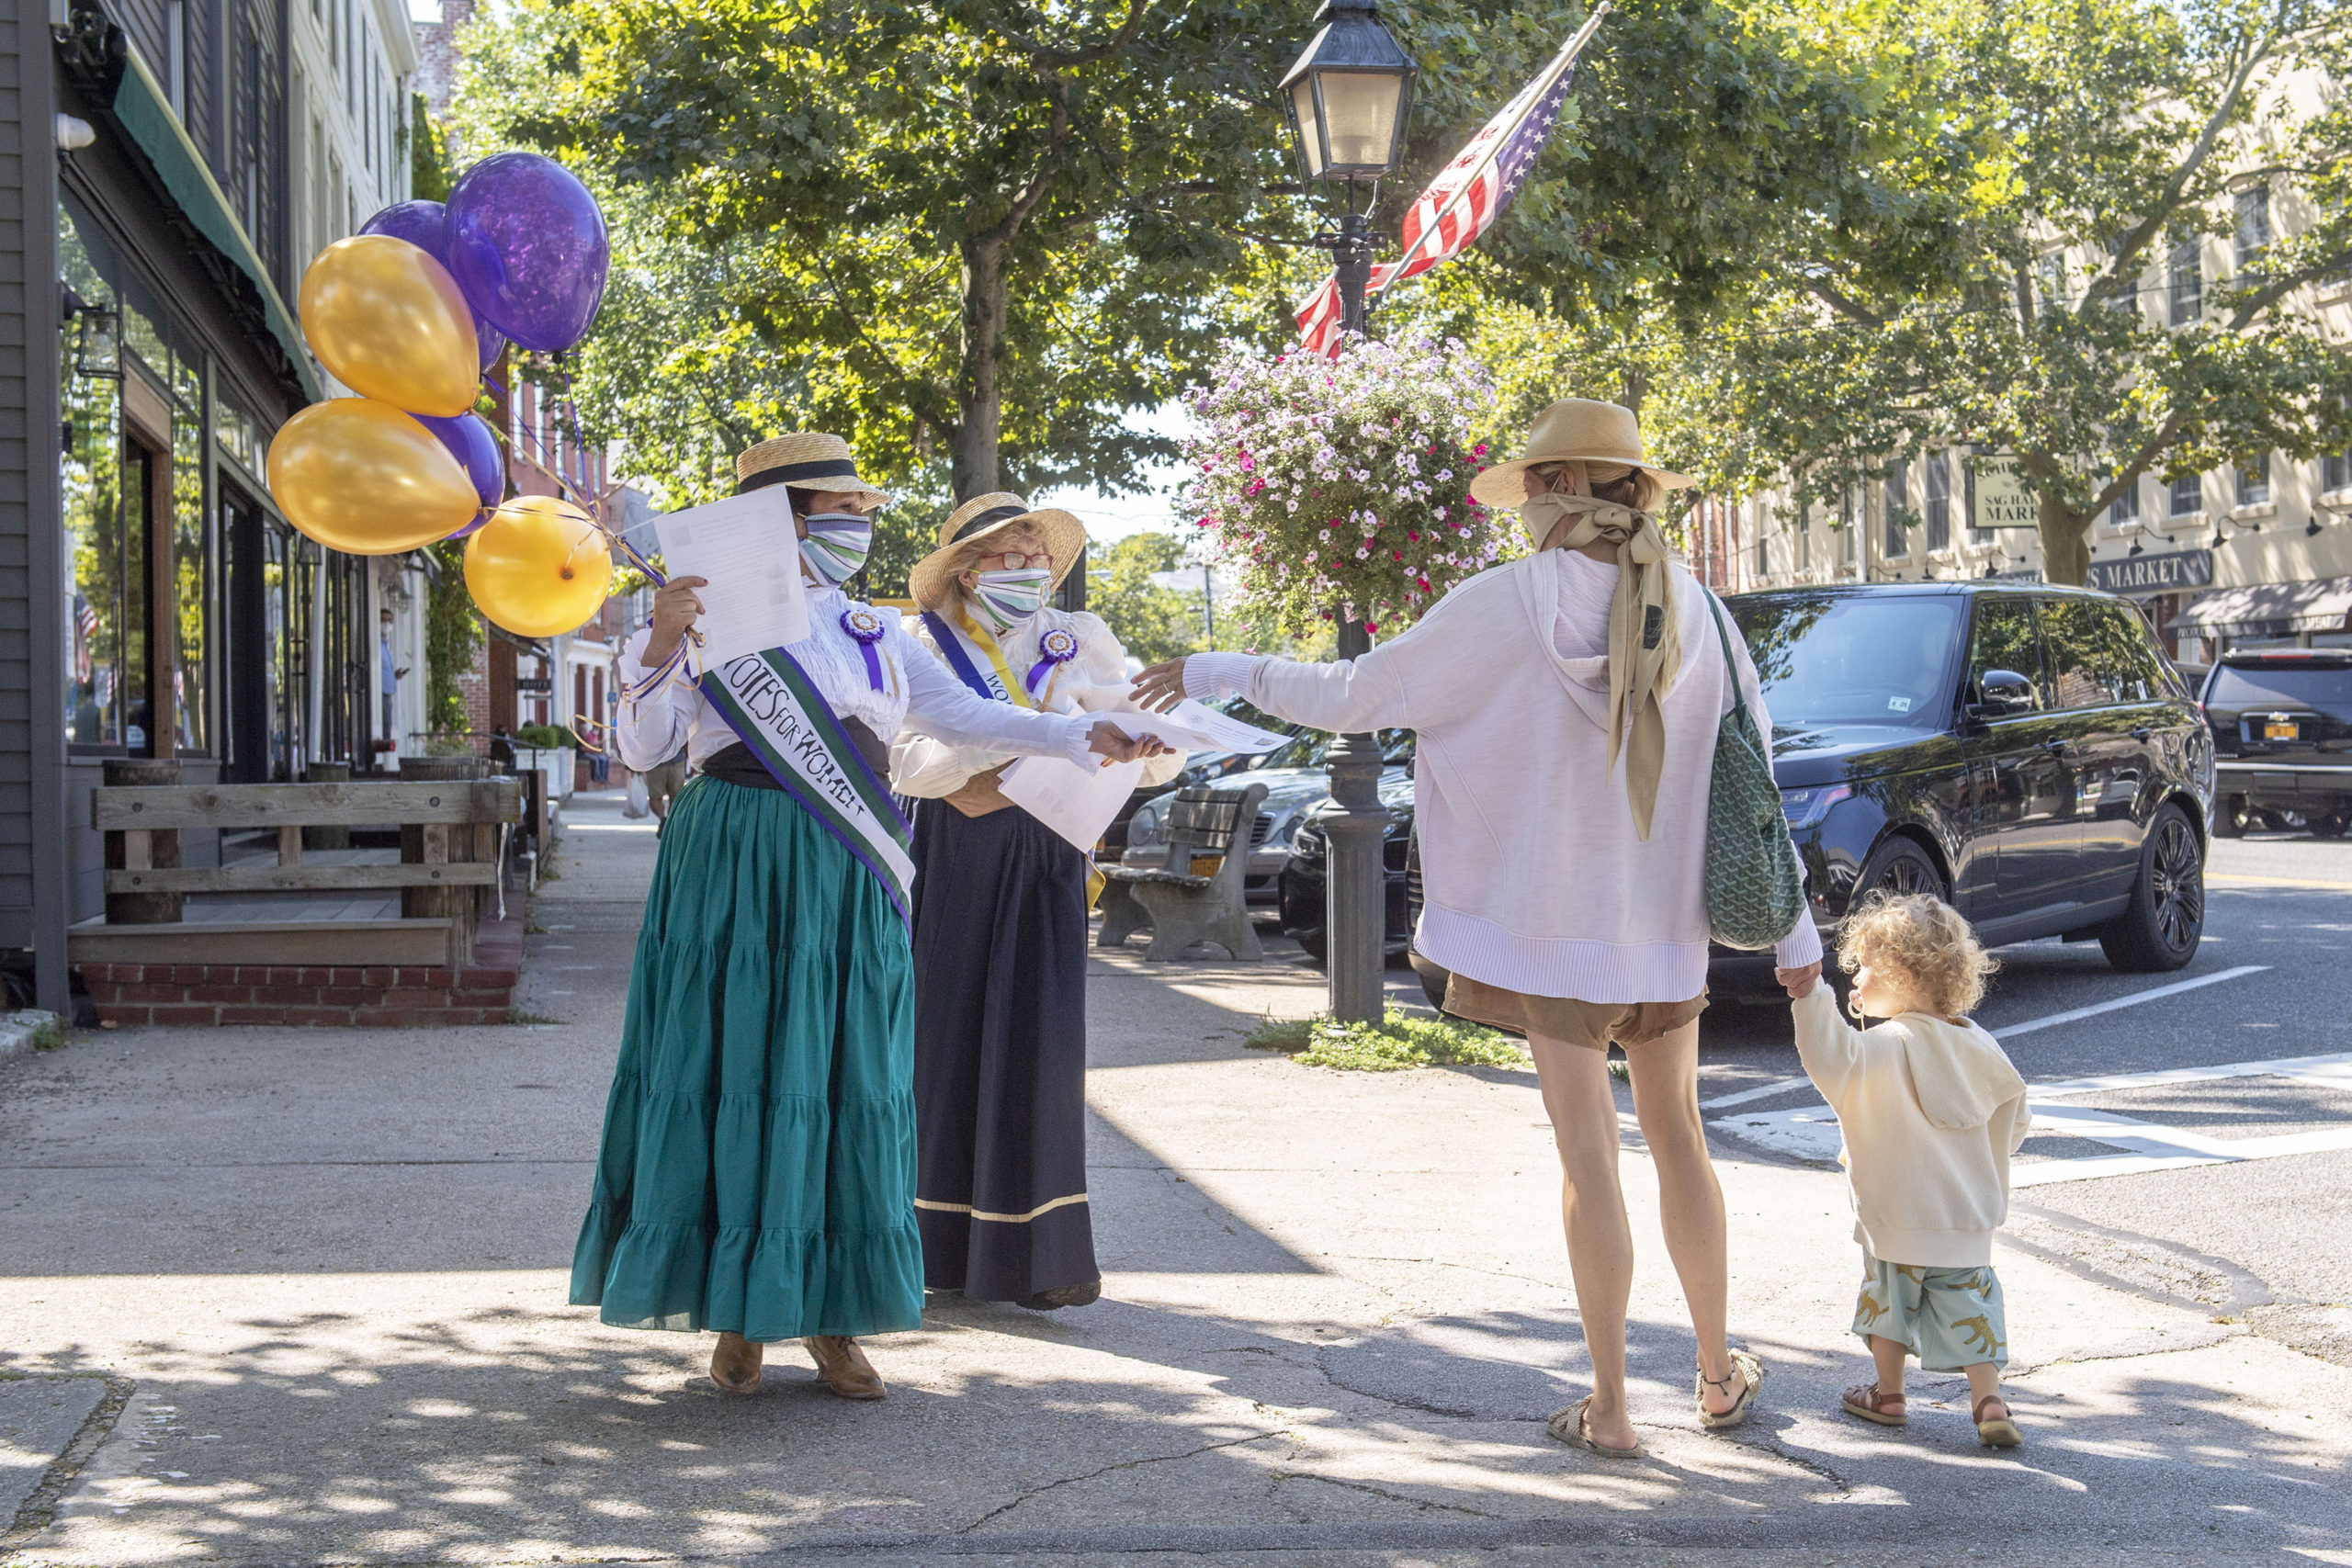 To honor the 100th anniversary of the 19th Amendment and women's right to vote, WLNG radio personality Bonnie Grice and Christ Episcopal Church Pastor Karen Campbell, in conjunction with the Sag Harbor Historical Society, wear period outfits and hand out fliers on Main Street in Sag Harbor on August 26. MICHAEL HELLER